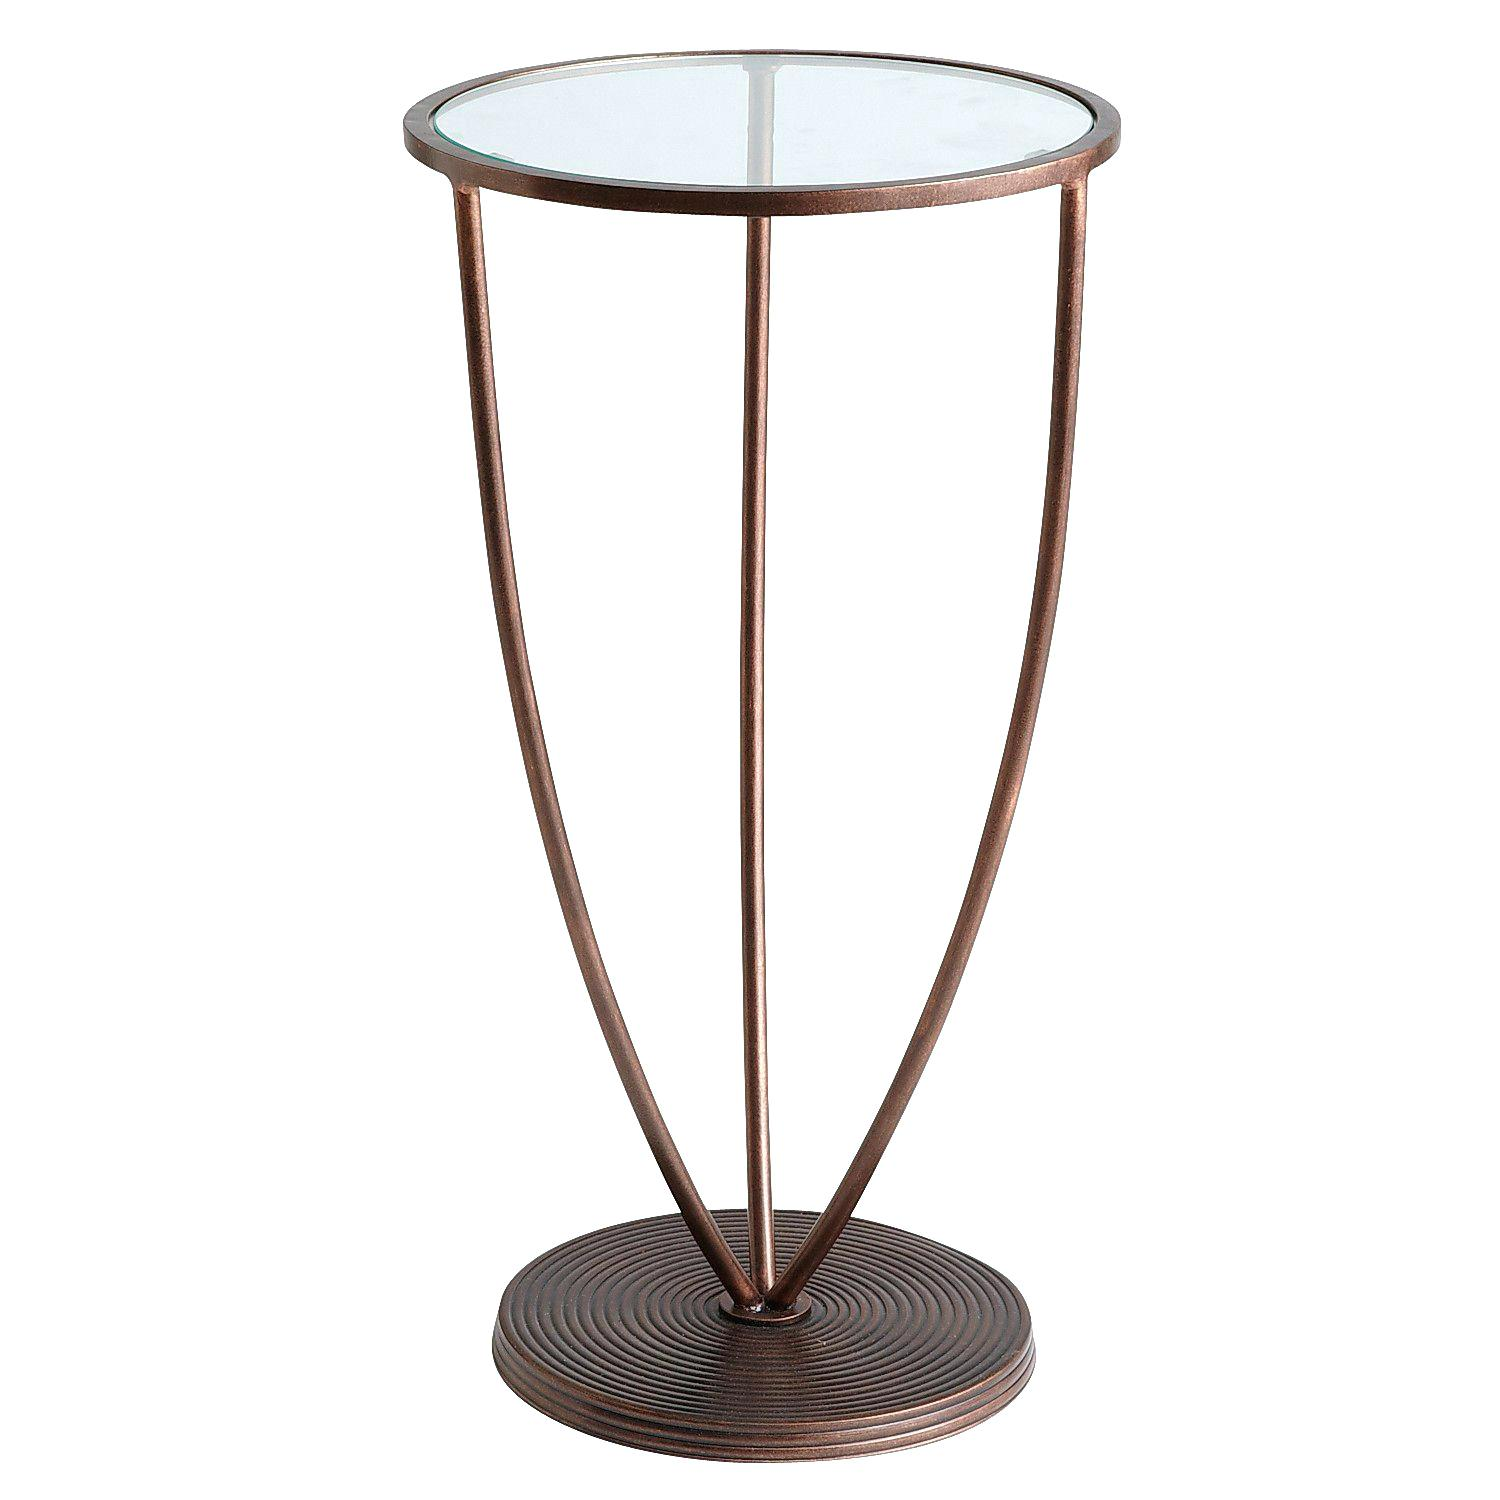 glass top accent table treasures silver round brass hawthorne replacement furniture legs target living room bar height patio hold back ashley coffee and end sets concrete white